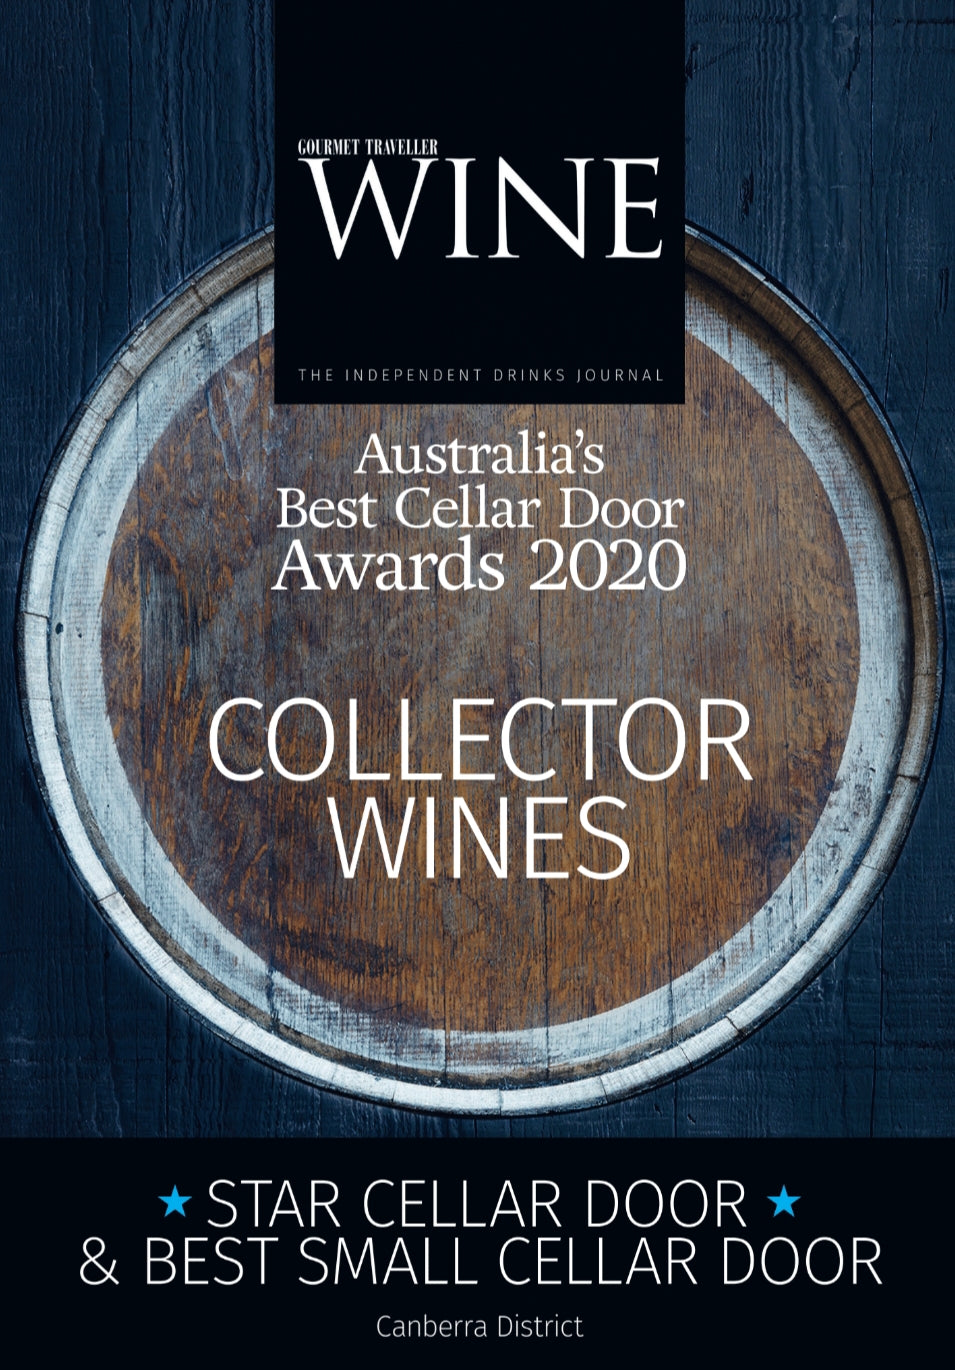 Award reads: Australia's Best Cellar Door Awards 2020 - Collector Wines - Star Cellar Door and Best Small Cellar Door